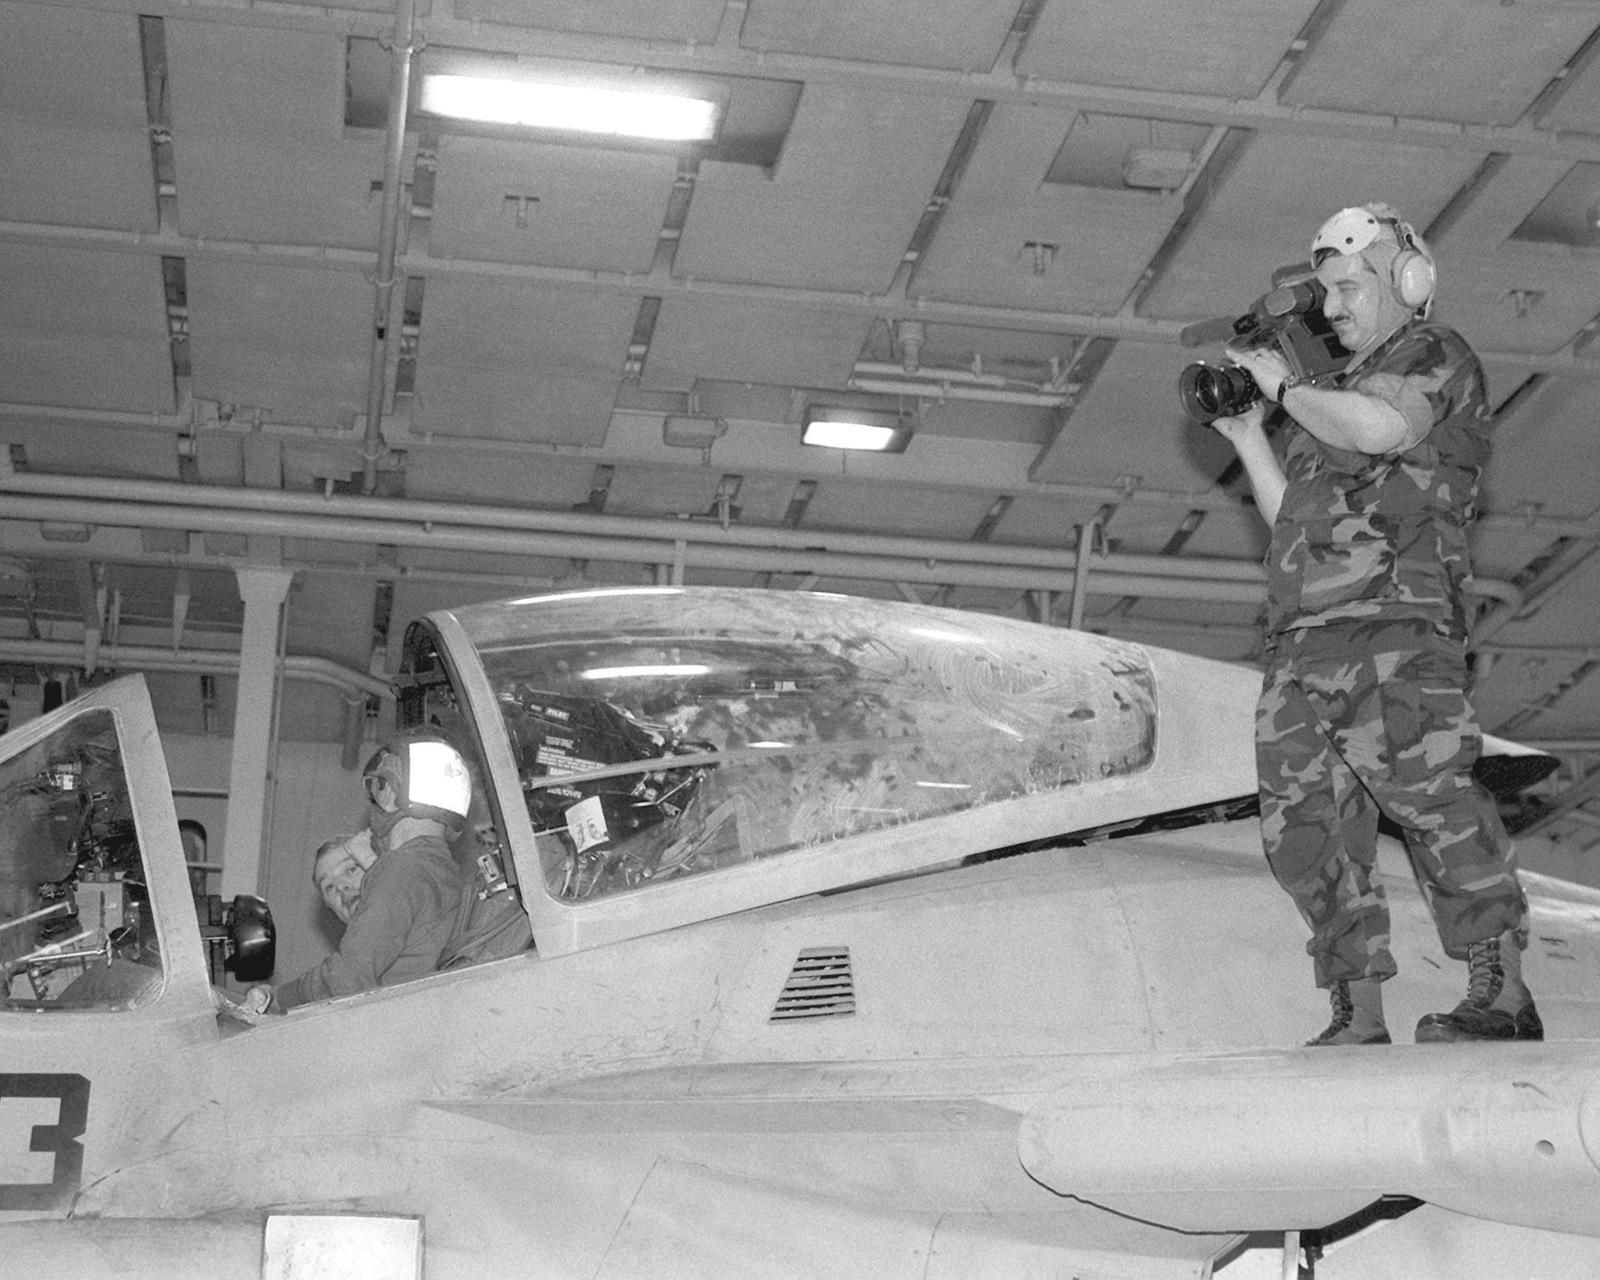 PH2 John Carnes stands on the wing of an Attack Squadron 75 (VA-75) A-6E Intruder aircraft to film a firefighting drill on the hangar deck of the aircraft carrier USS JOHN F. KENNEDY (CV-67) during FLEET EX 1-90